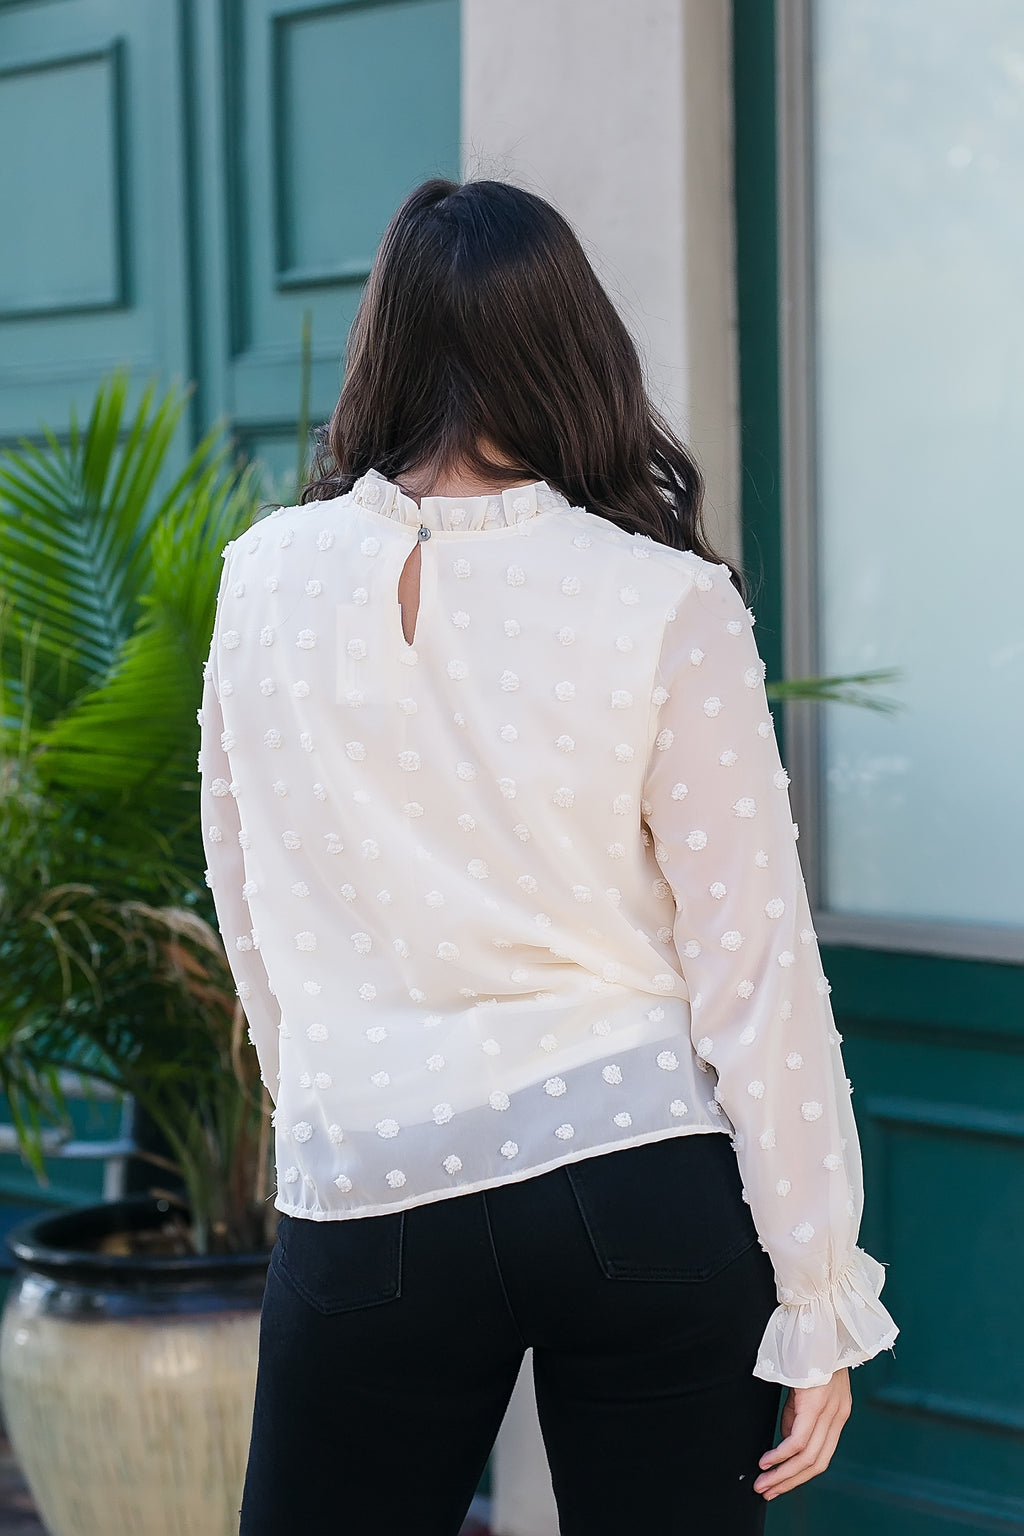 Connecting the dots cream top